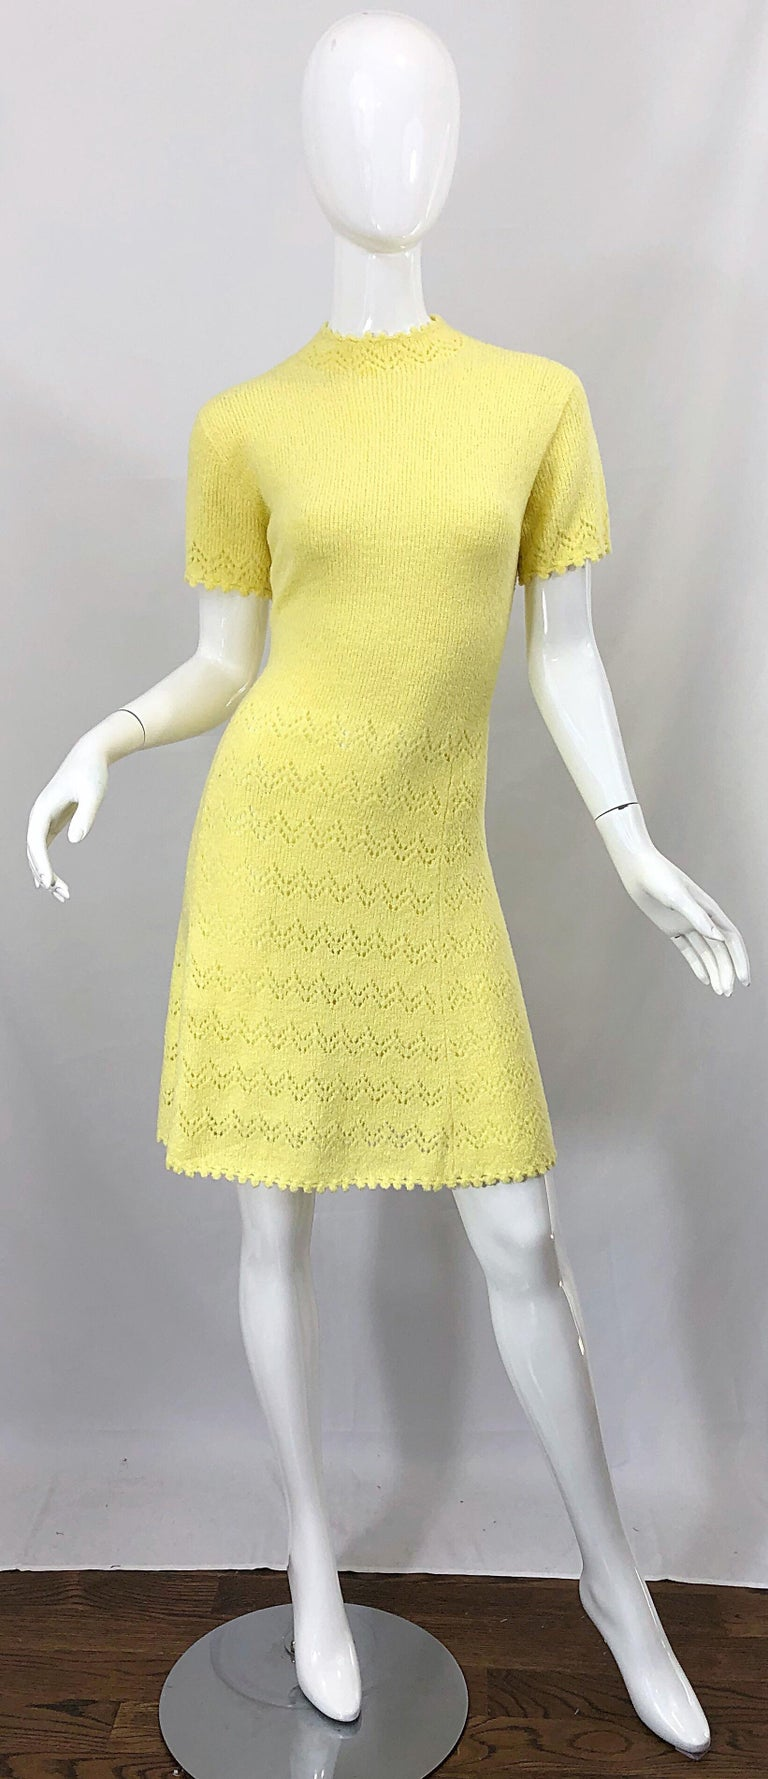 Tres chic ST. JOHN signature santana knit canary yellow short sleeve A-Line dress! Features the softest knit that stretches to fit. Hand crochet detail at the neck, sleeves and below the waist. Full metal zipper up the back with hook-and-eye